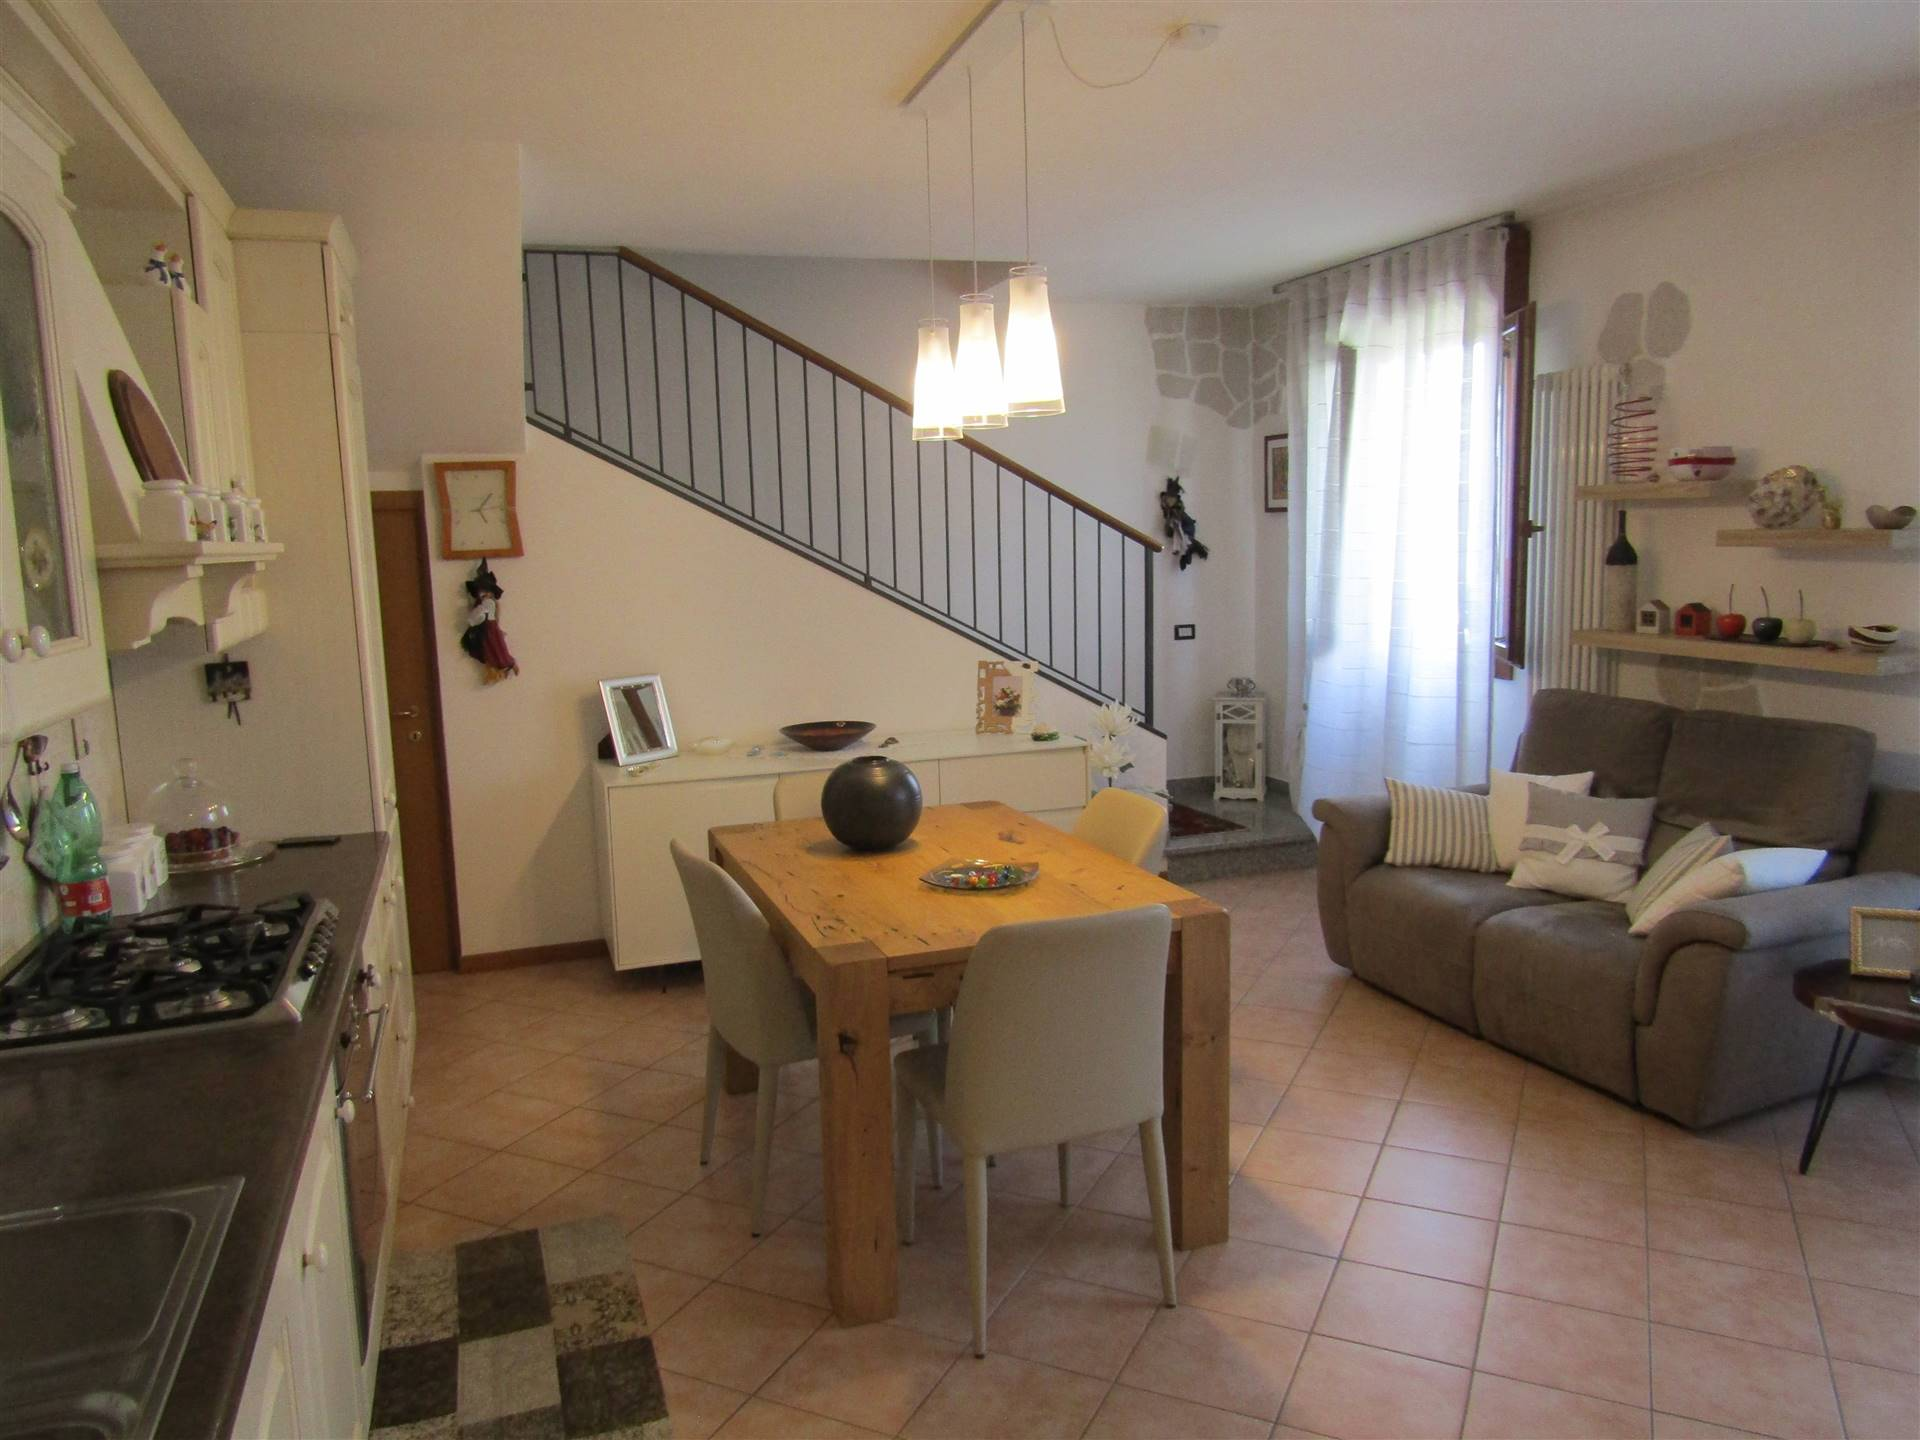 VETREGO, MIRANO, Apartment for sale of 95 Sq. mt., Habitable, Heating Individual heating system, Energetic class: G, placed at 1° on 3, composed by: 3 Rooms, Kitchenette, , 2 Bedrooms, 2 Bathrooms,